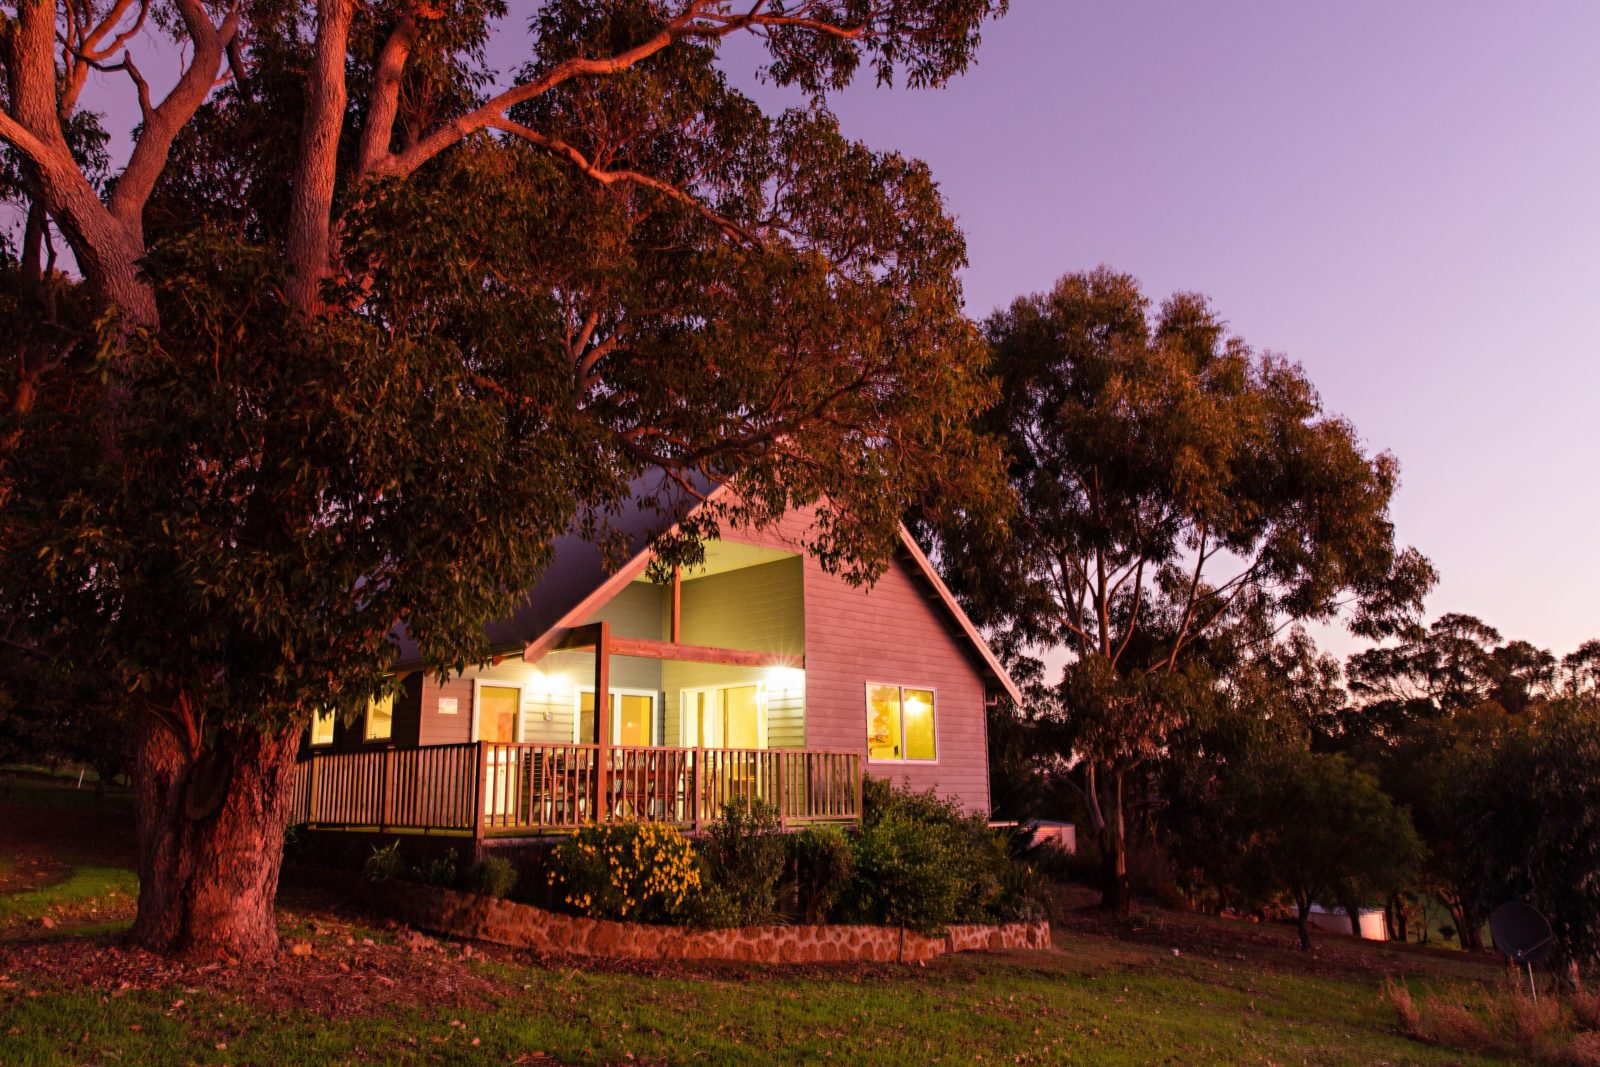 Wildwood Valley Cottages and Cooking School, Yallingup, Western Australia